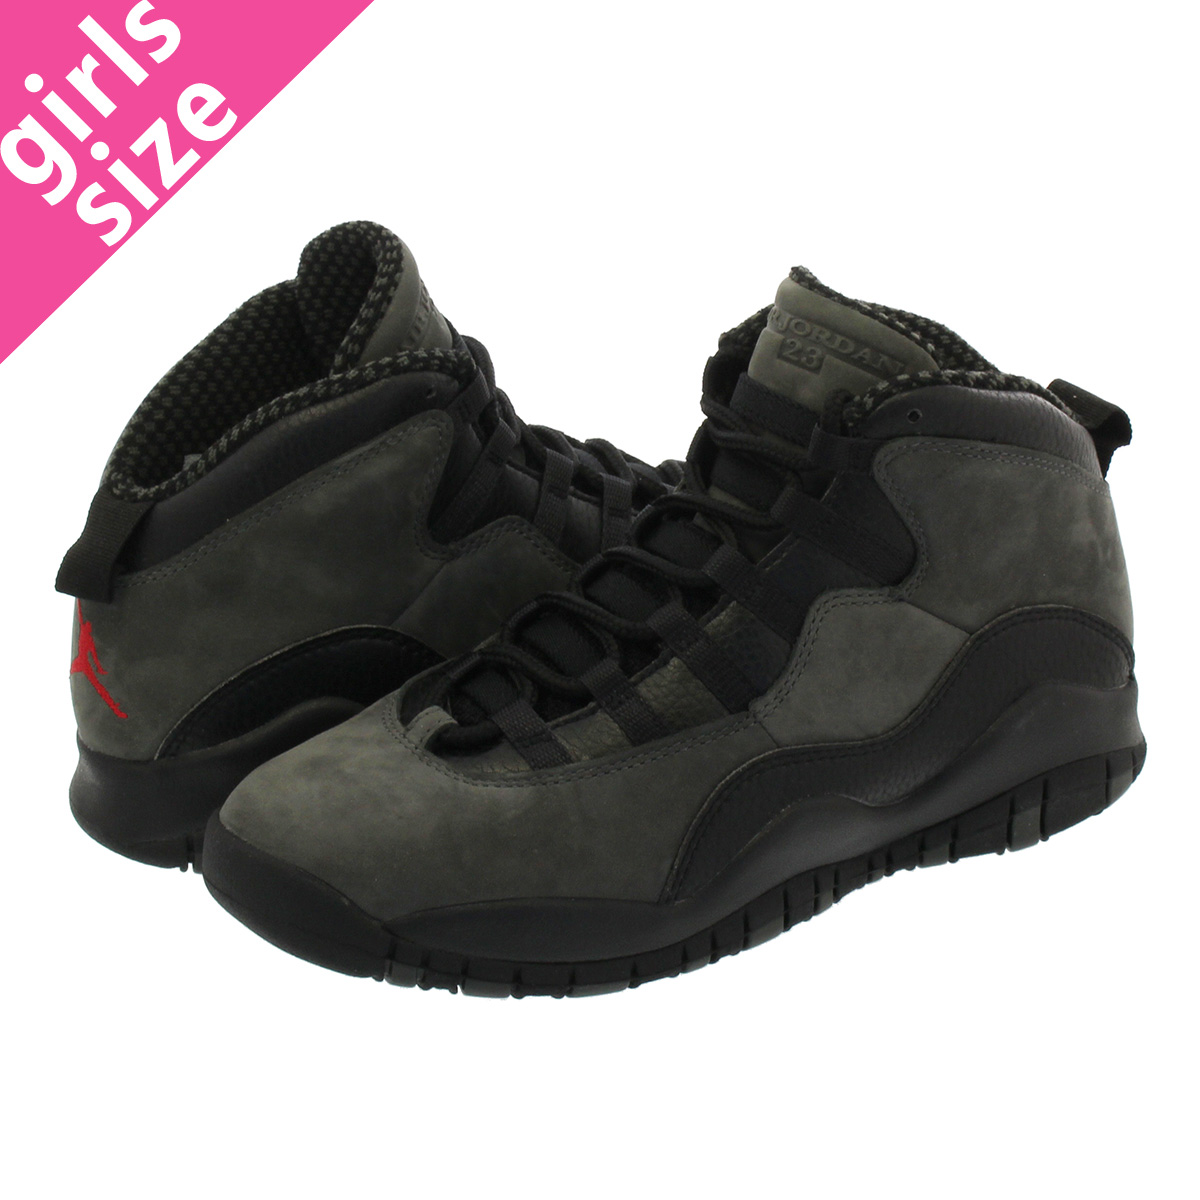 wholesale price new specials best value NIKE AIR JORDAN 10 RETRO BG Nike Air Jordan 10 nostalgic BG DARK  SHADOW/TRUE RED/BLACK 310,806-002